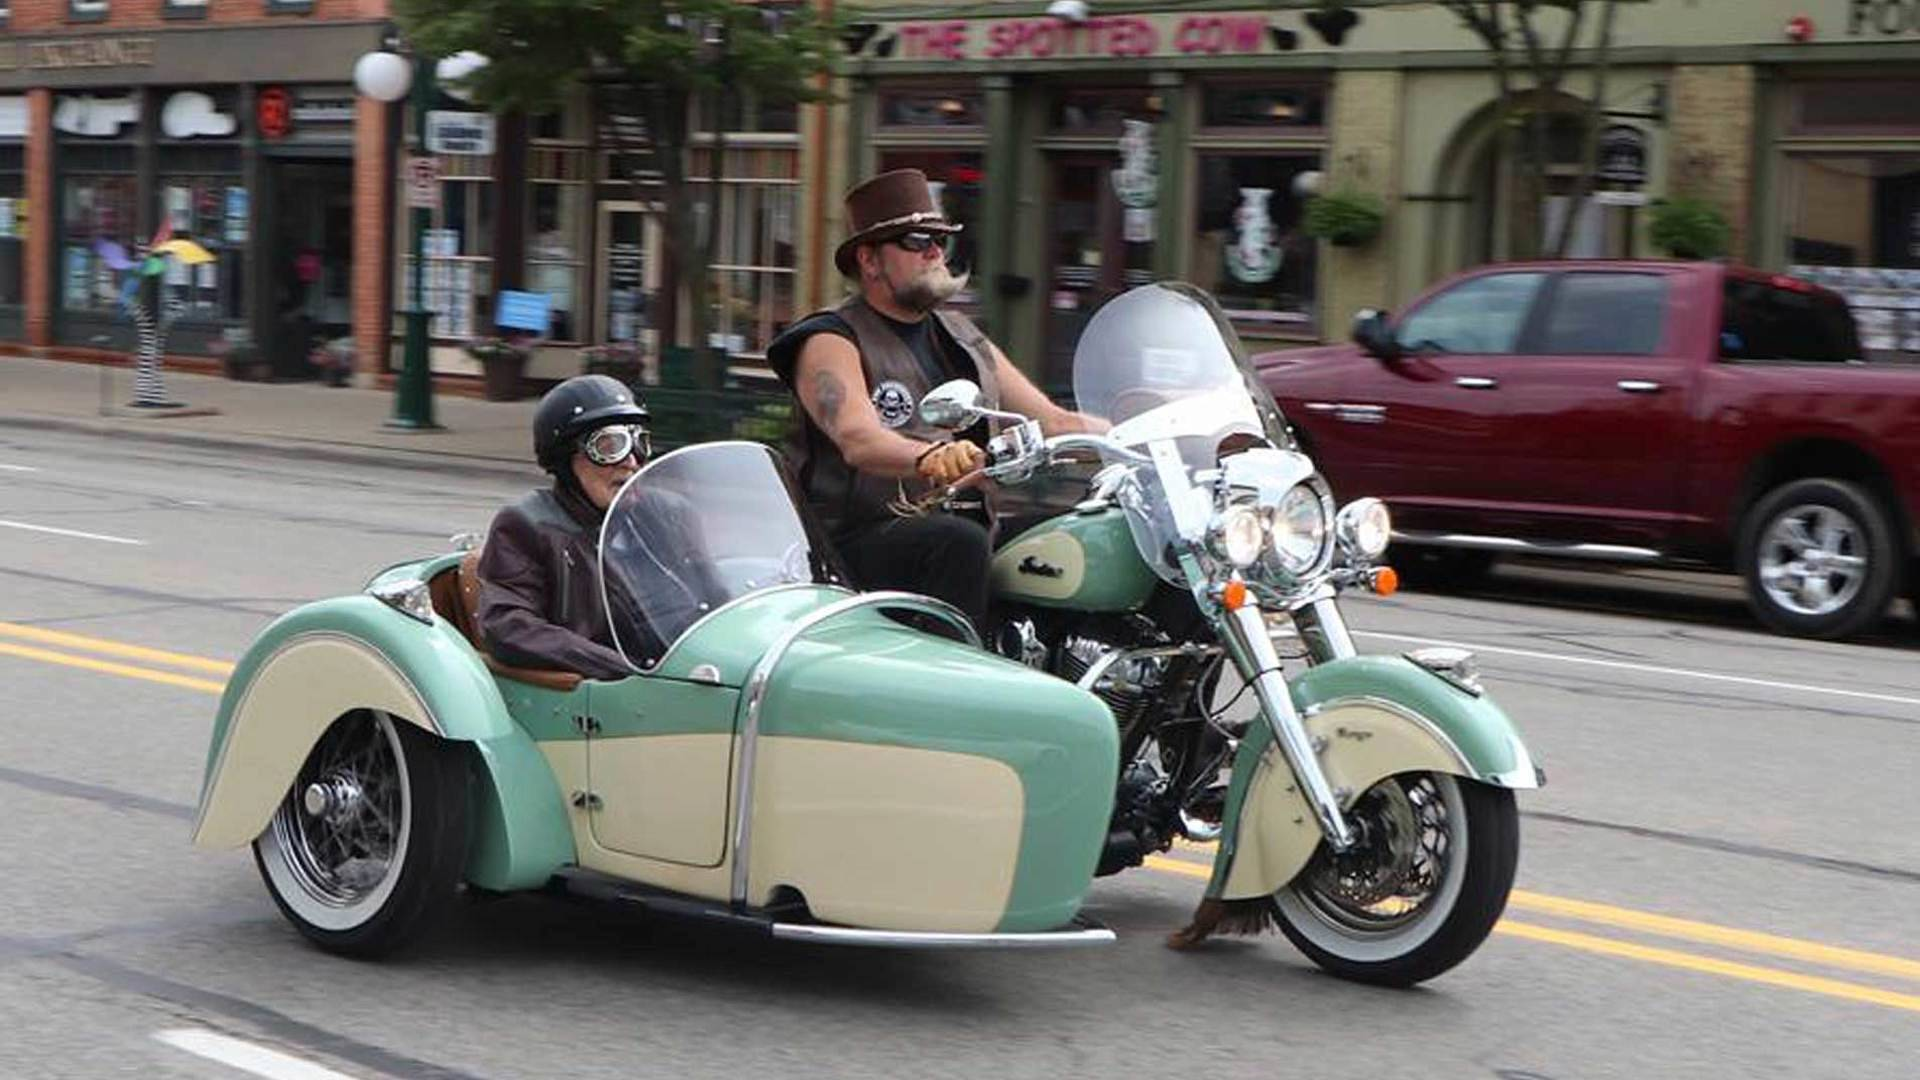 WWII Vet Gets to Ride on an Indian Once More